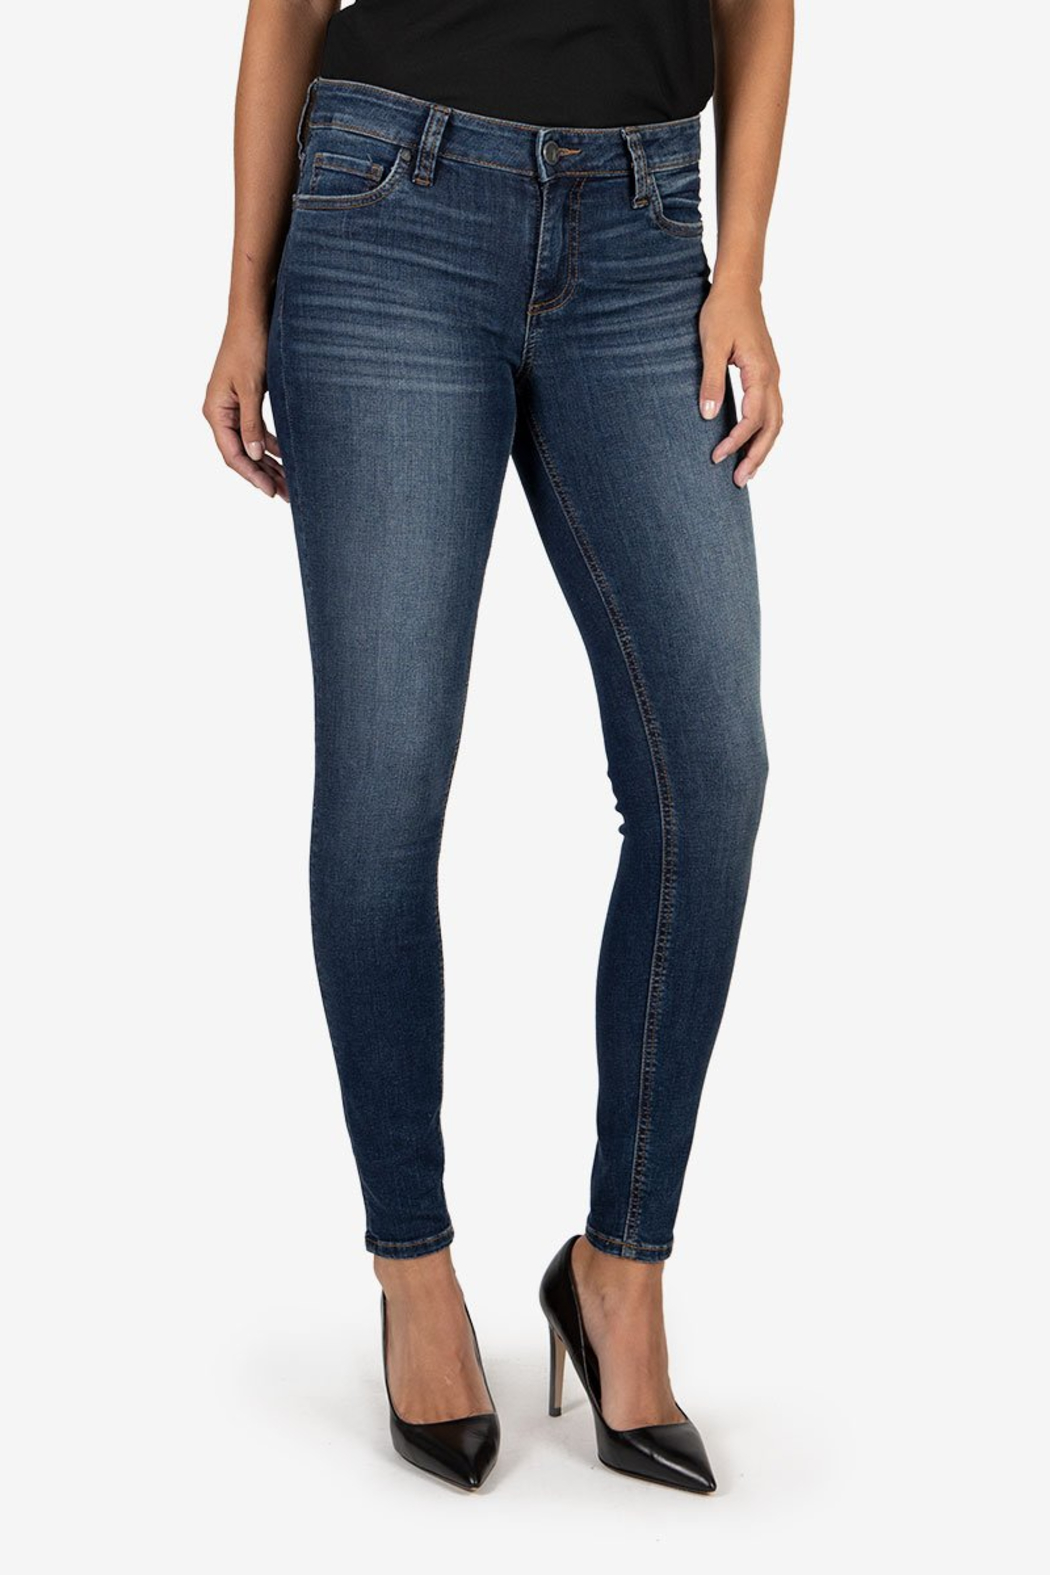 Kut from the Kloth Mia Toothpick Skinny - Front Cropped Image